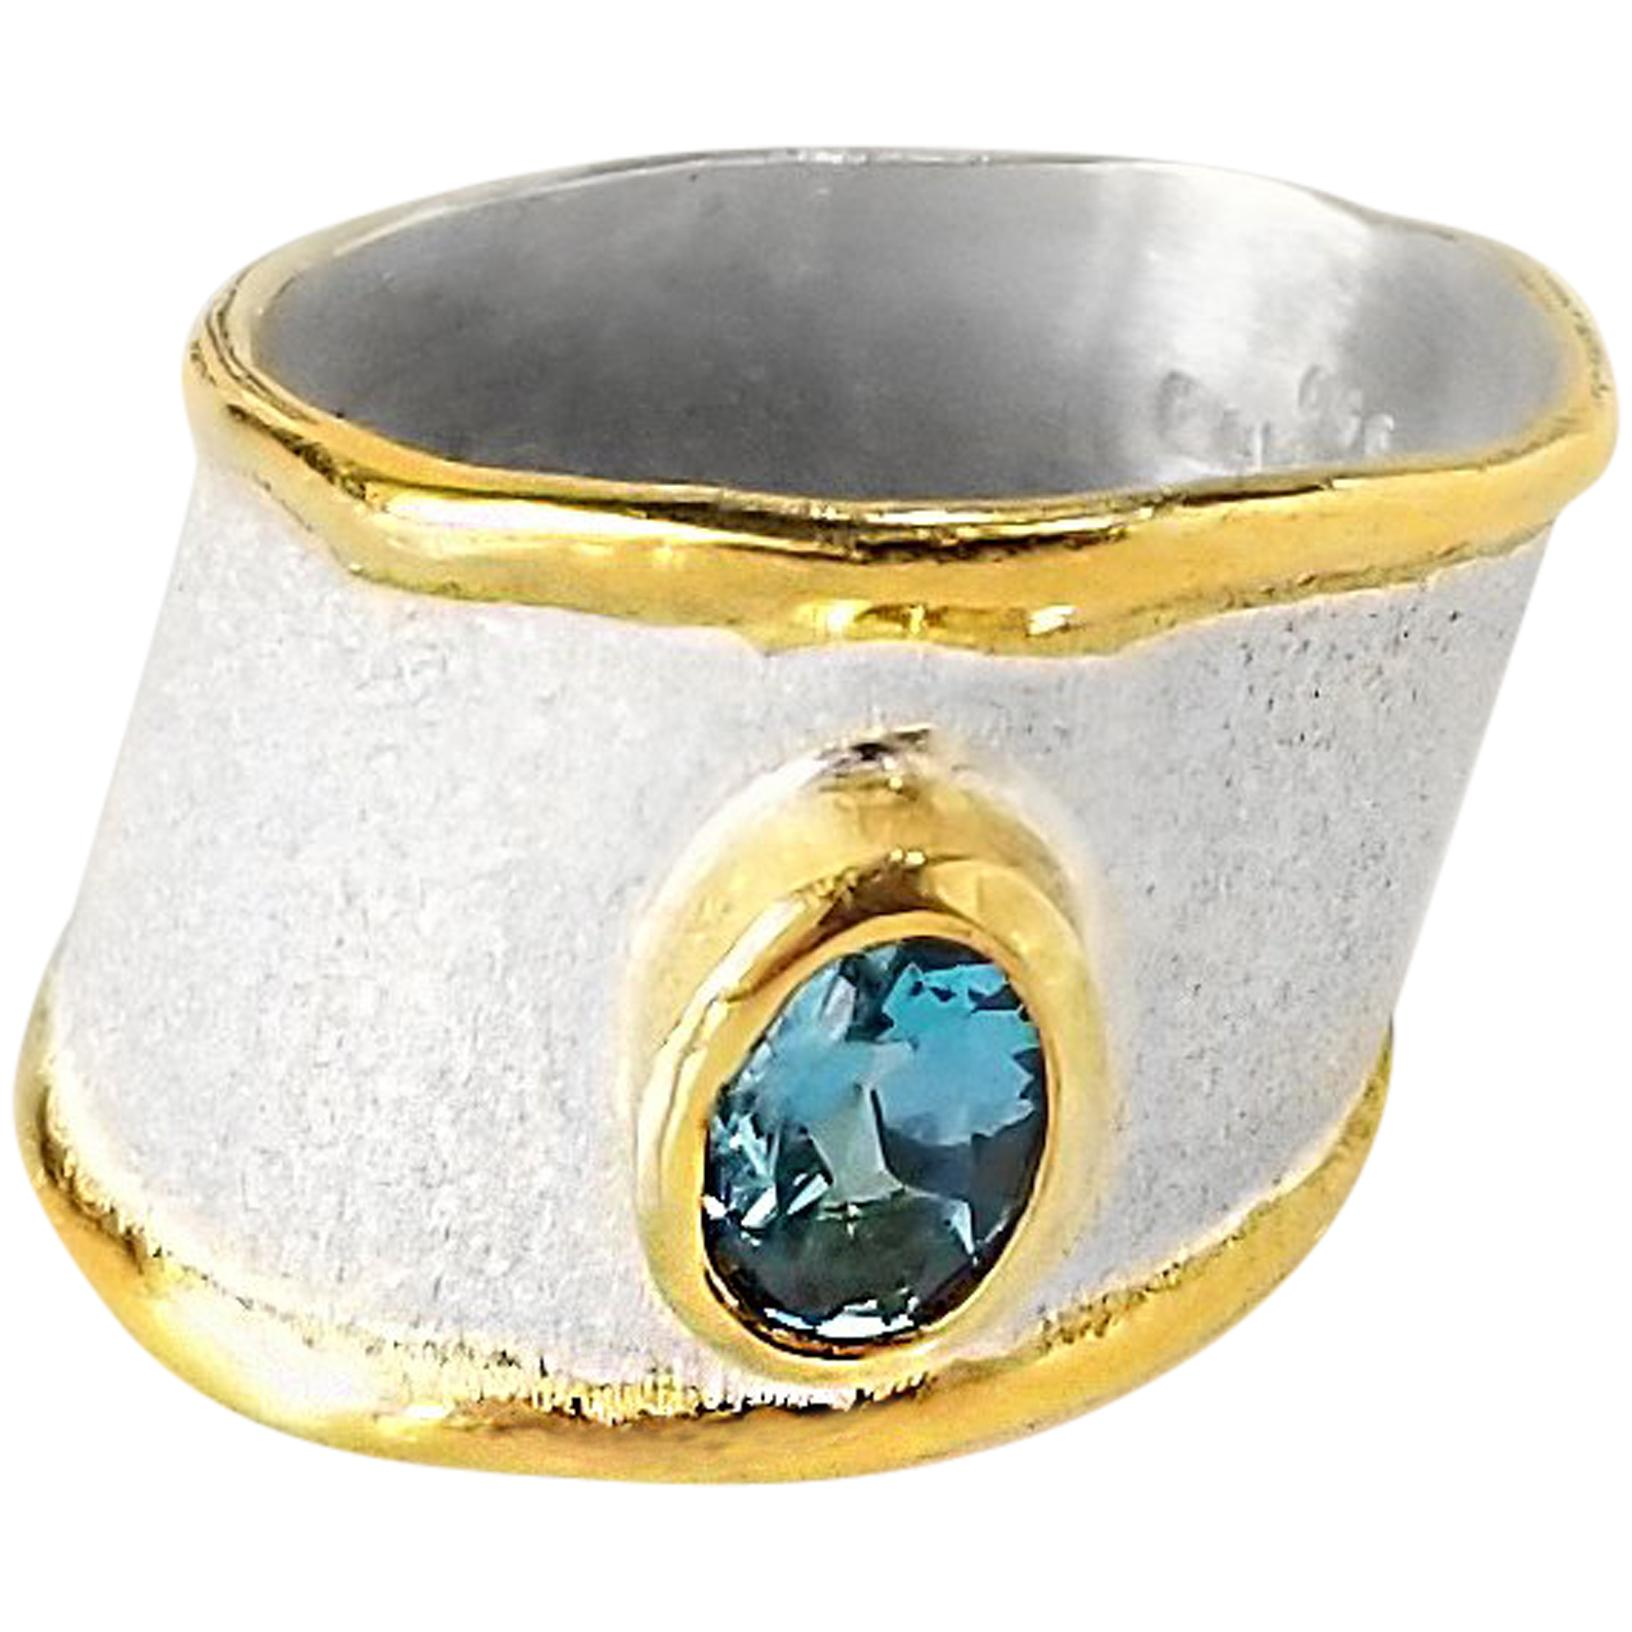 Yianni Creations London Blue Topaz Fine Silver and 24 Karat Gold Band Ring